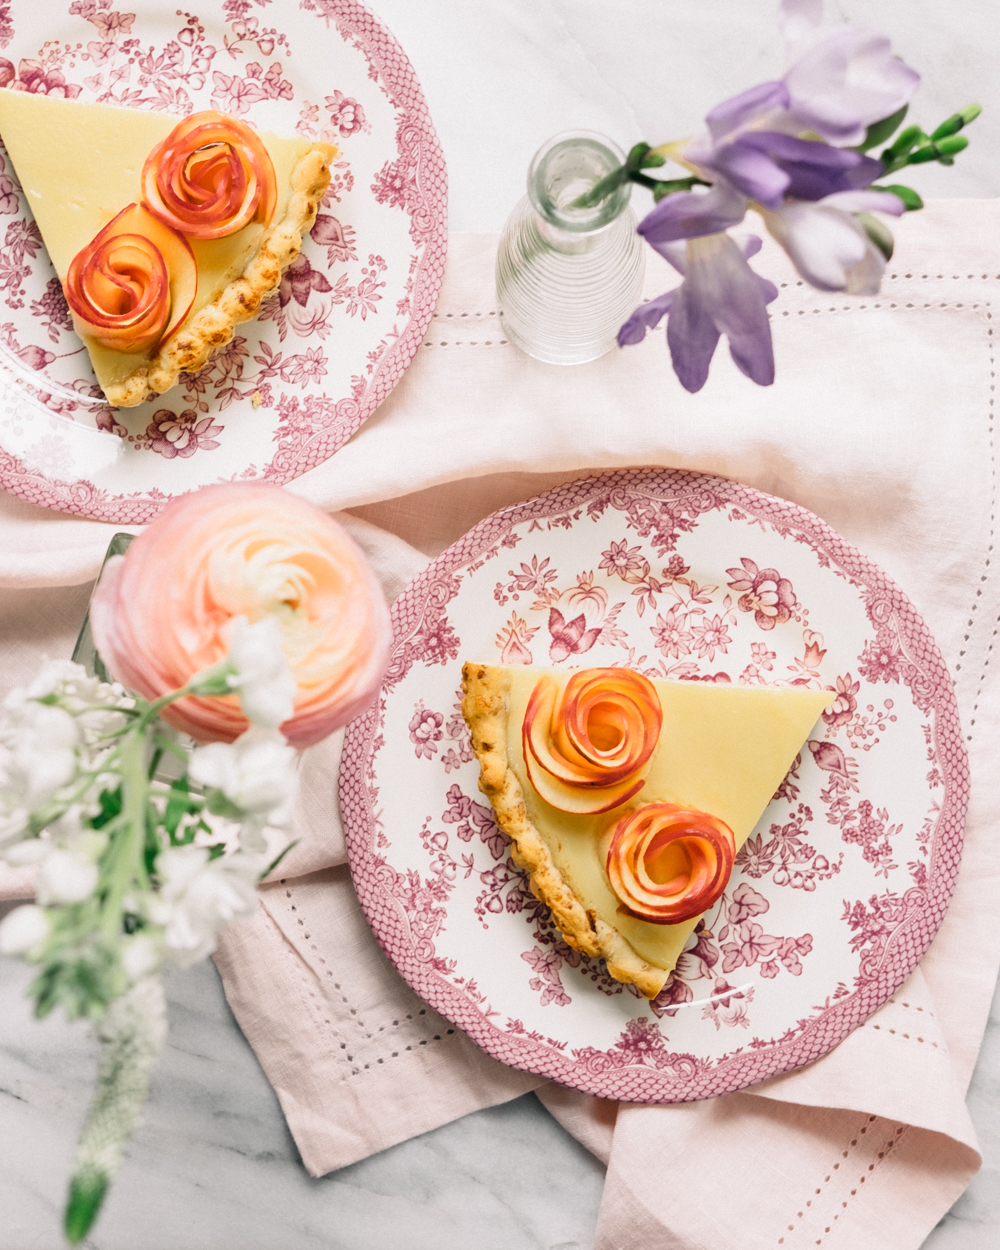 sabrina-stavenjord-my-miaou-apple-rose-maple-tart-recipe.jpg